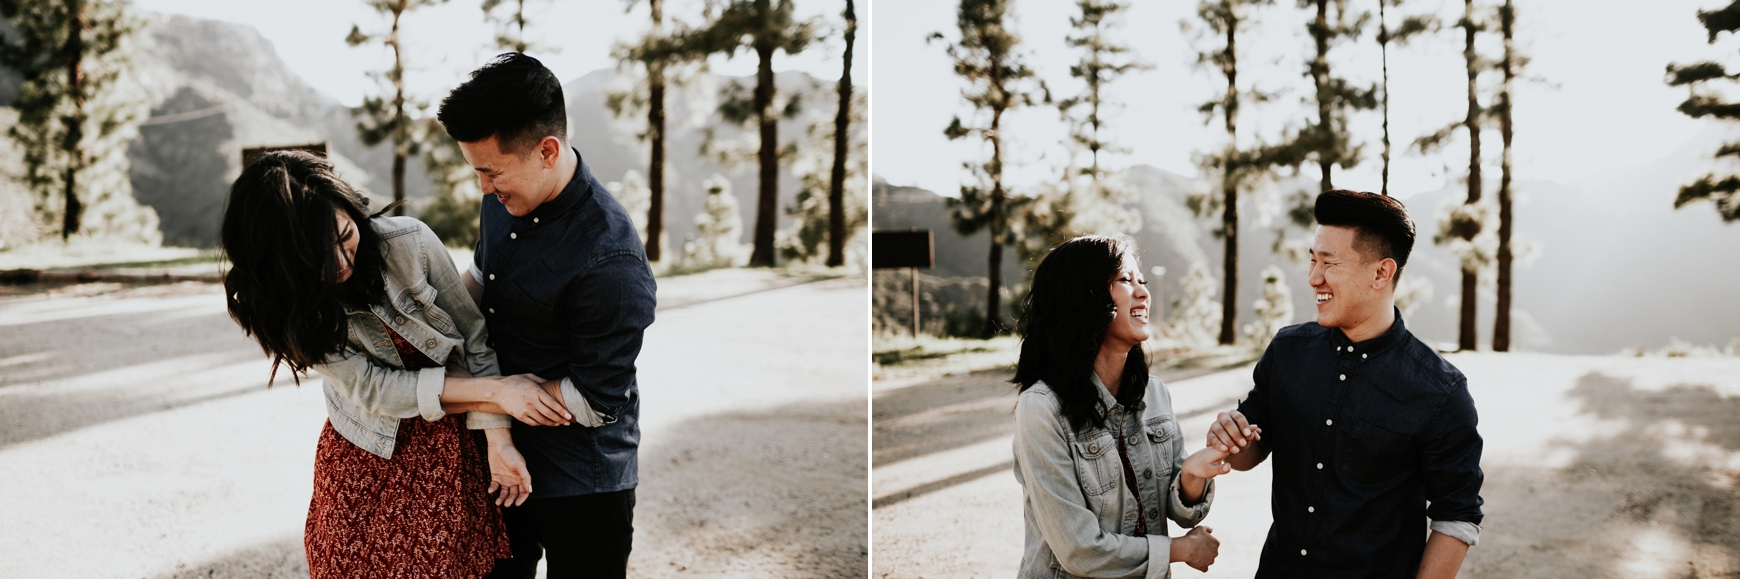 Los Angeles Engagement Christina & Evan Emily Magers Photography-92Emily Magers Photography.jpg